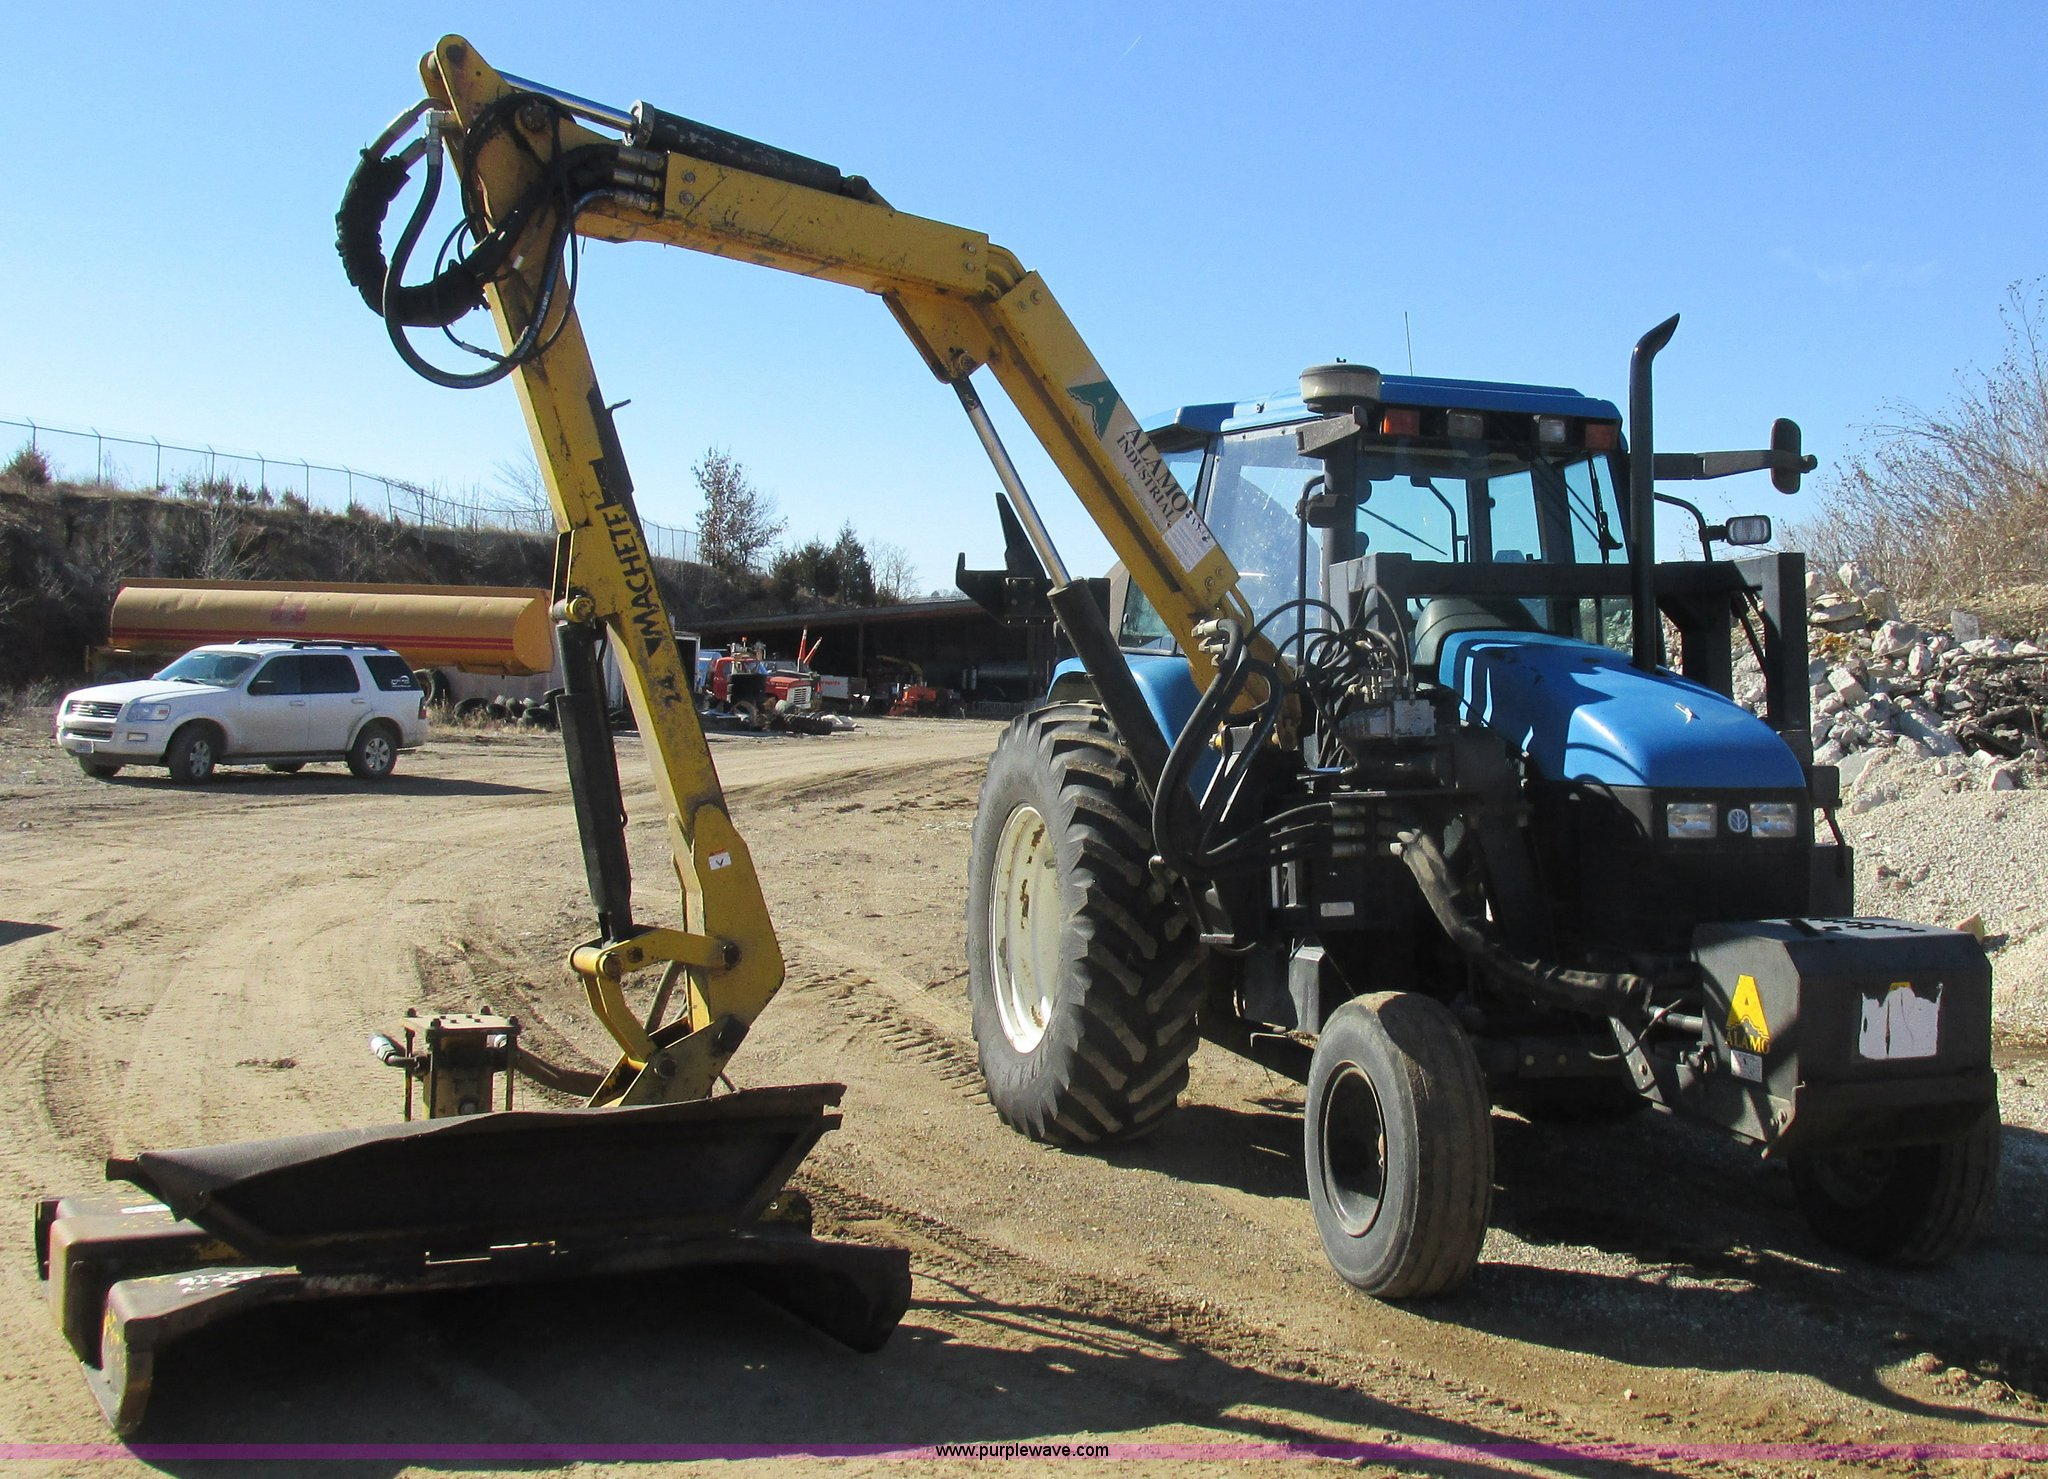 1999 Ford New Holland TS110 tractor with side boom mower | I